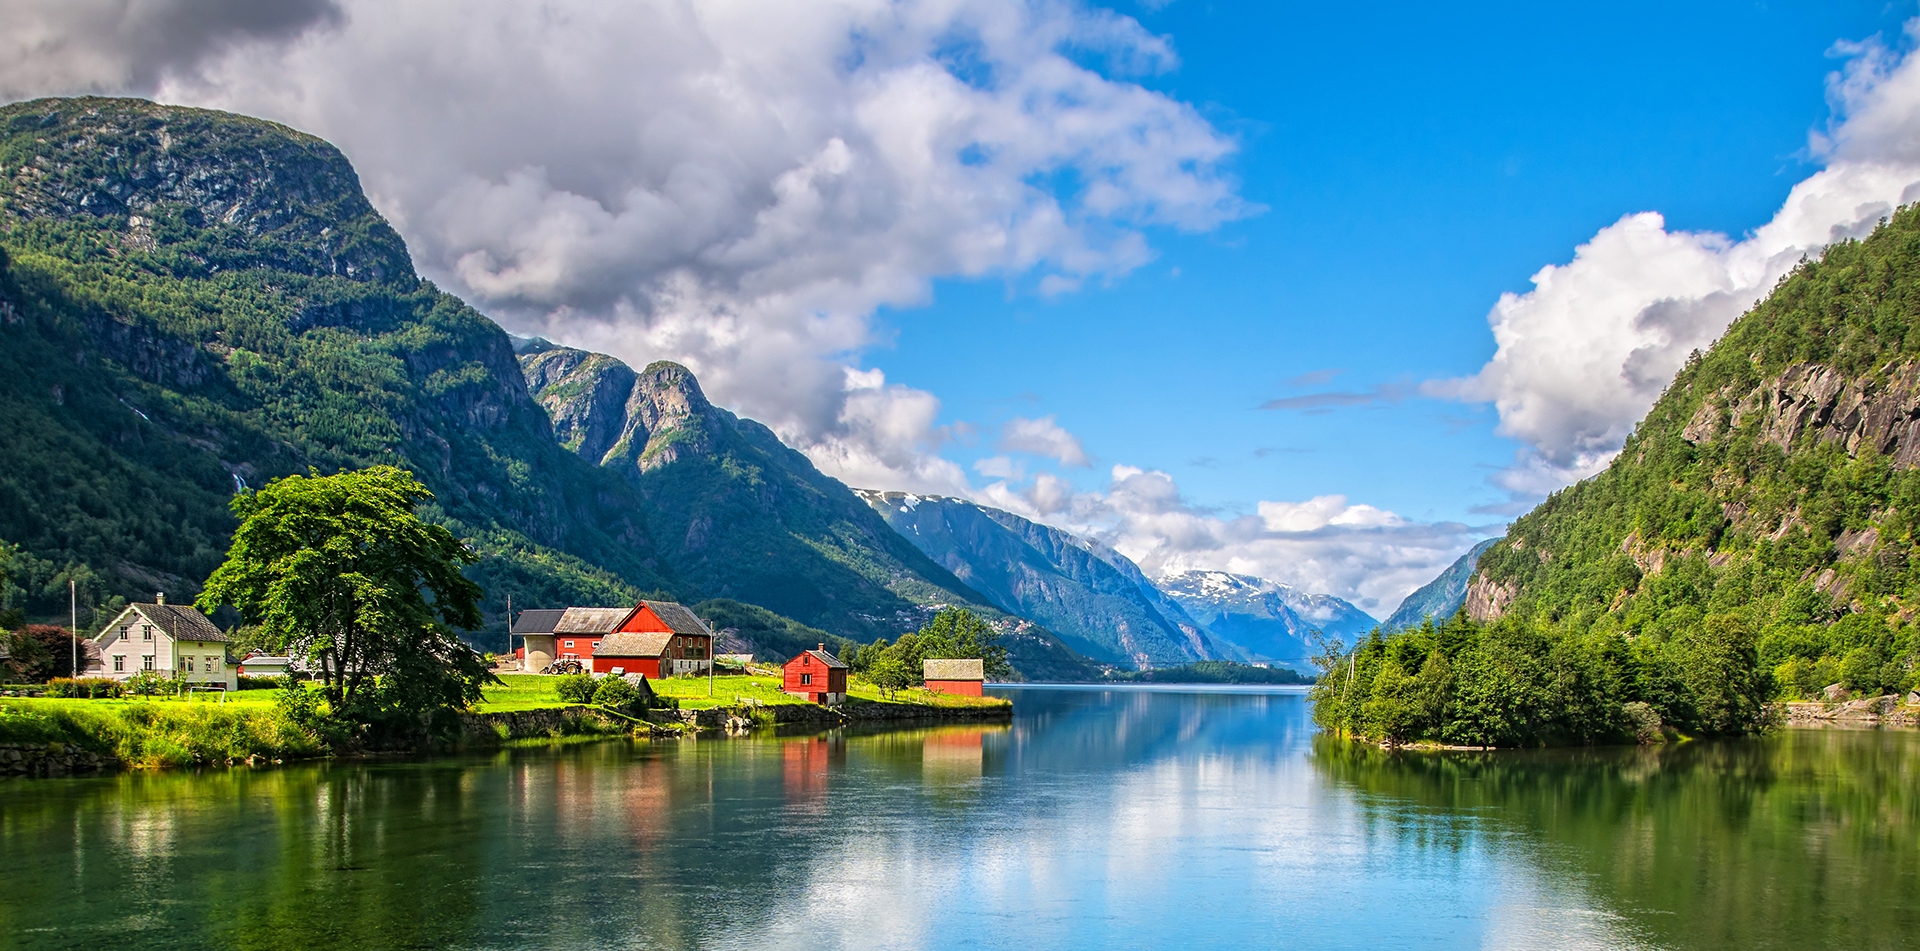 Europe Norway fjord lands with local farming village along the water - luxury vacation destinations